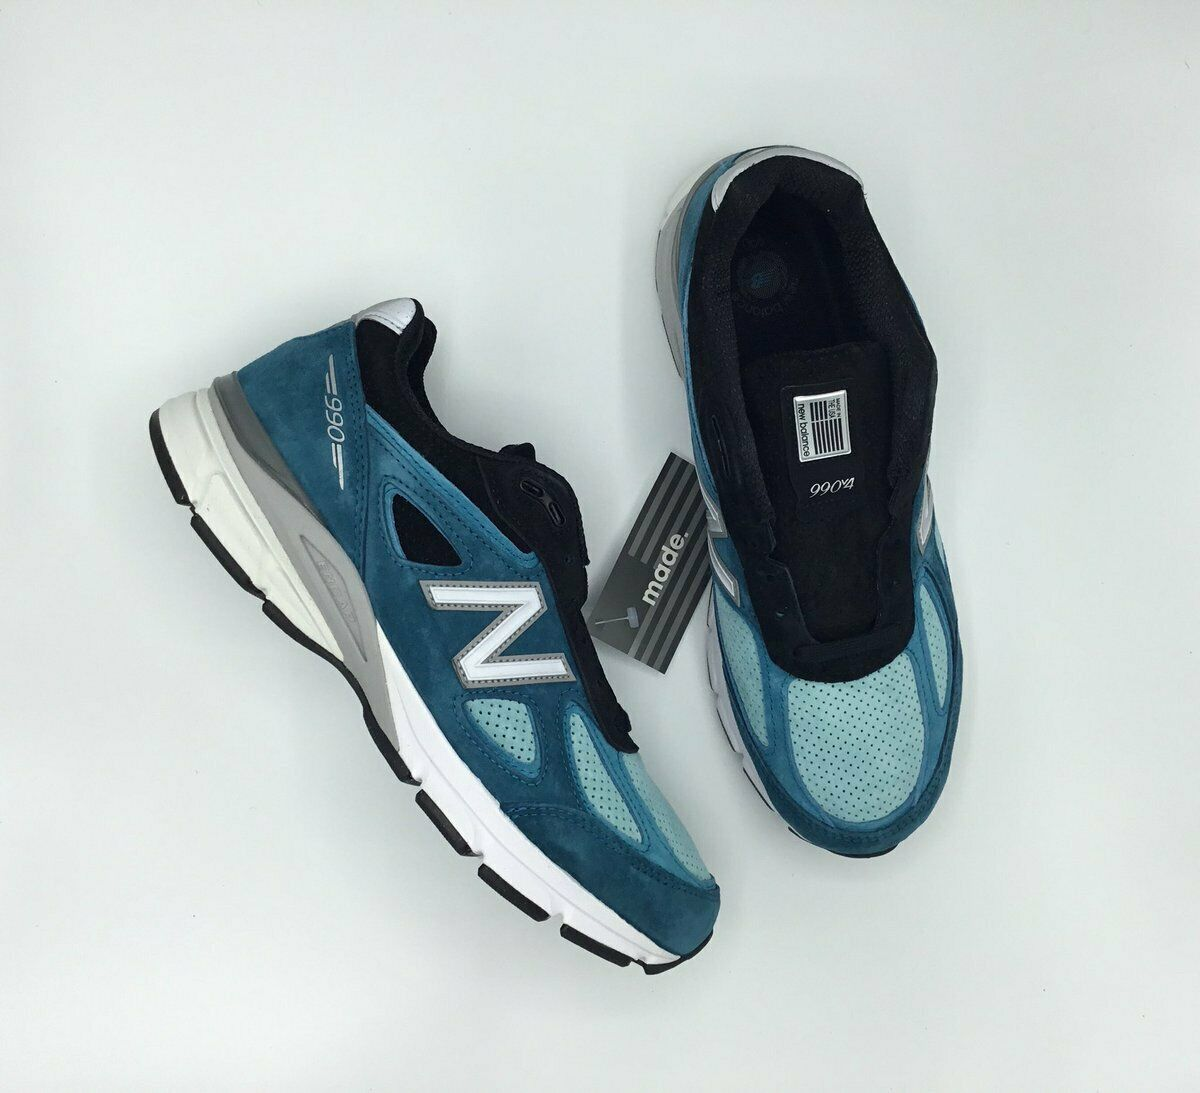 SALE NEW BALANCE 990 M990 M990DM4 MgoldCCAN blueE  SIZE 7.5-13 BRAND NEW IN HAND